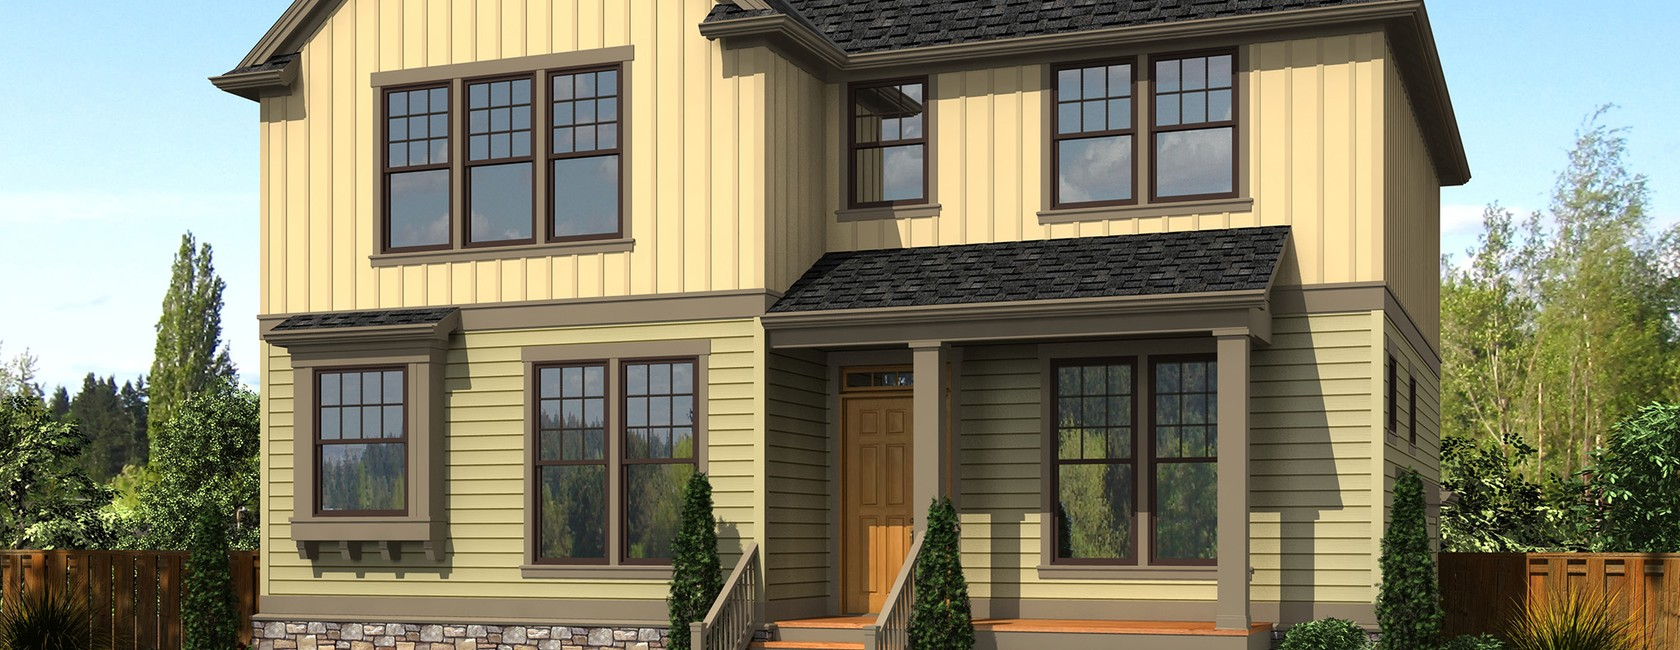 Traditional Craftsman House Plan Of The Week The Bracken Bank